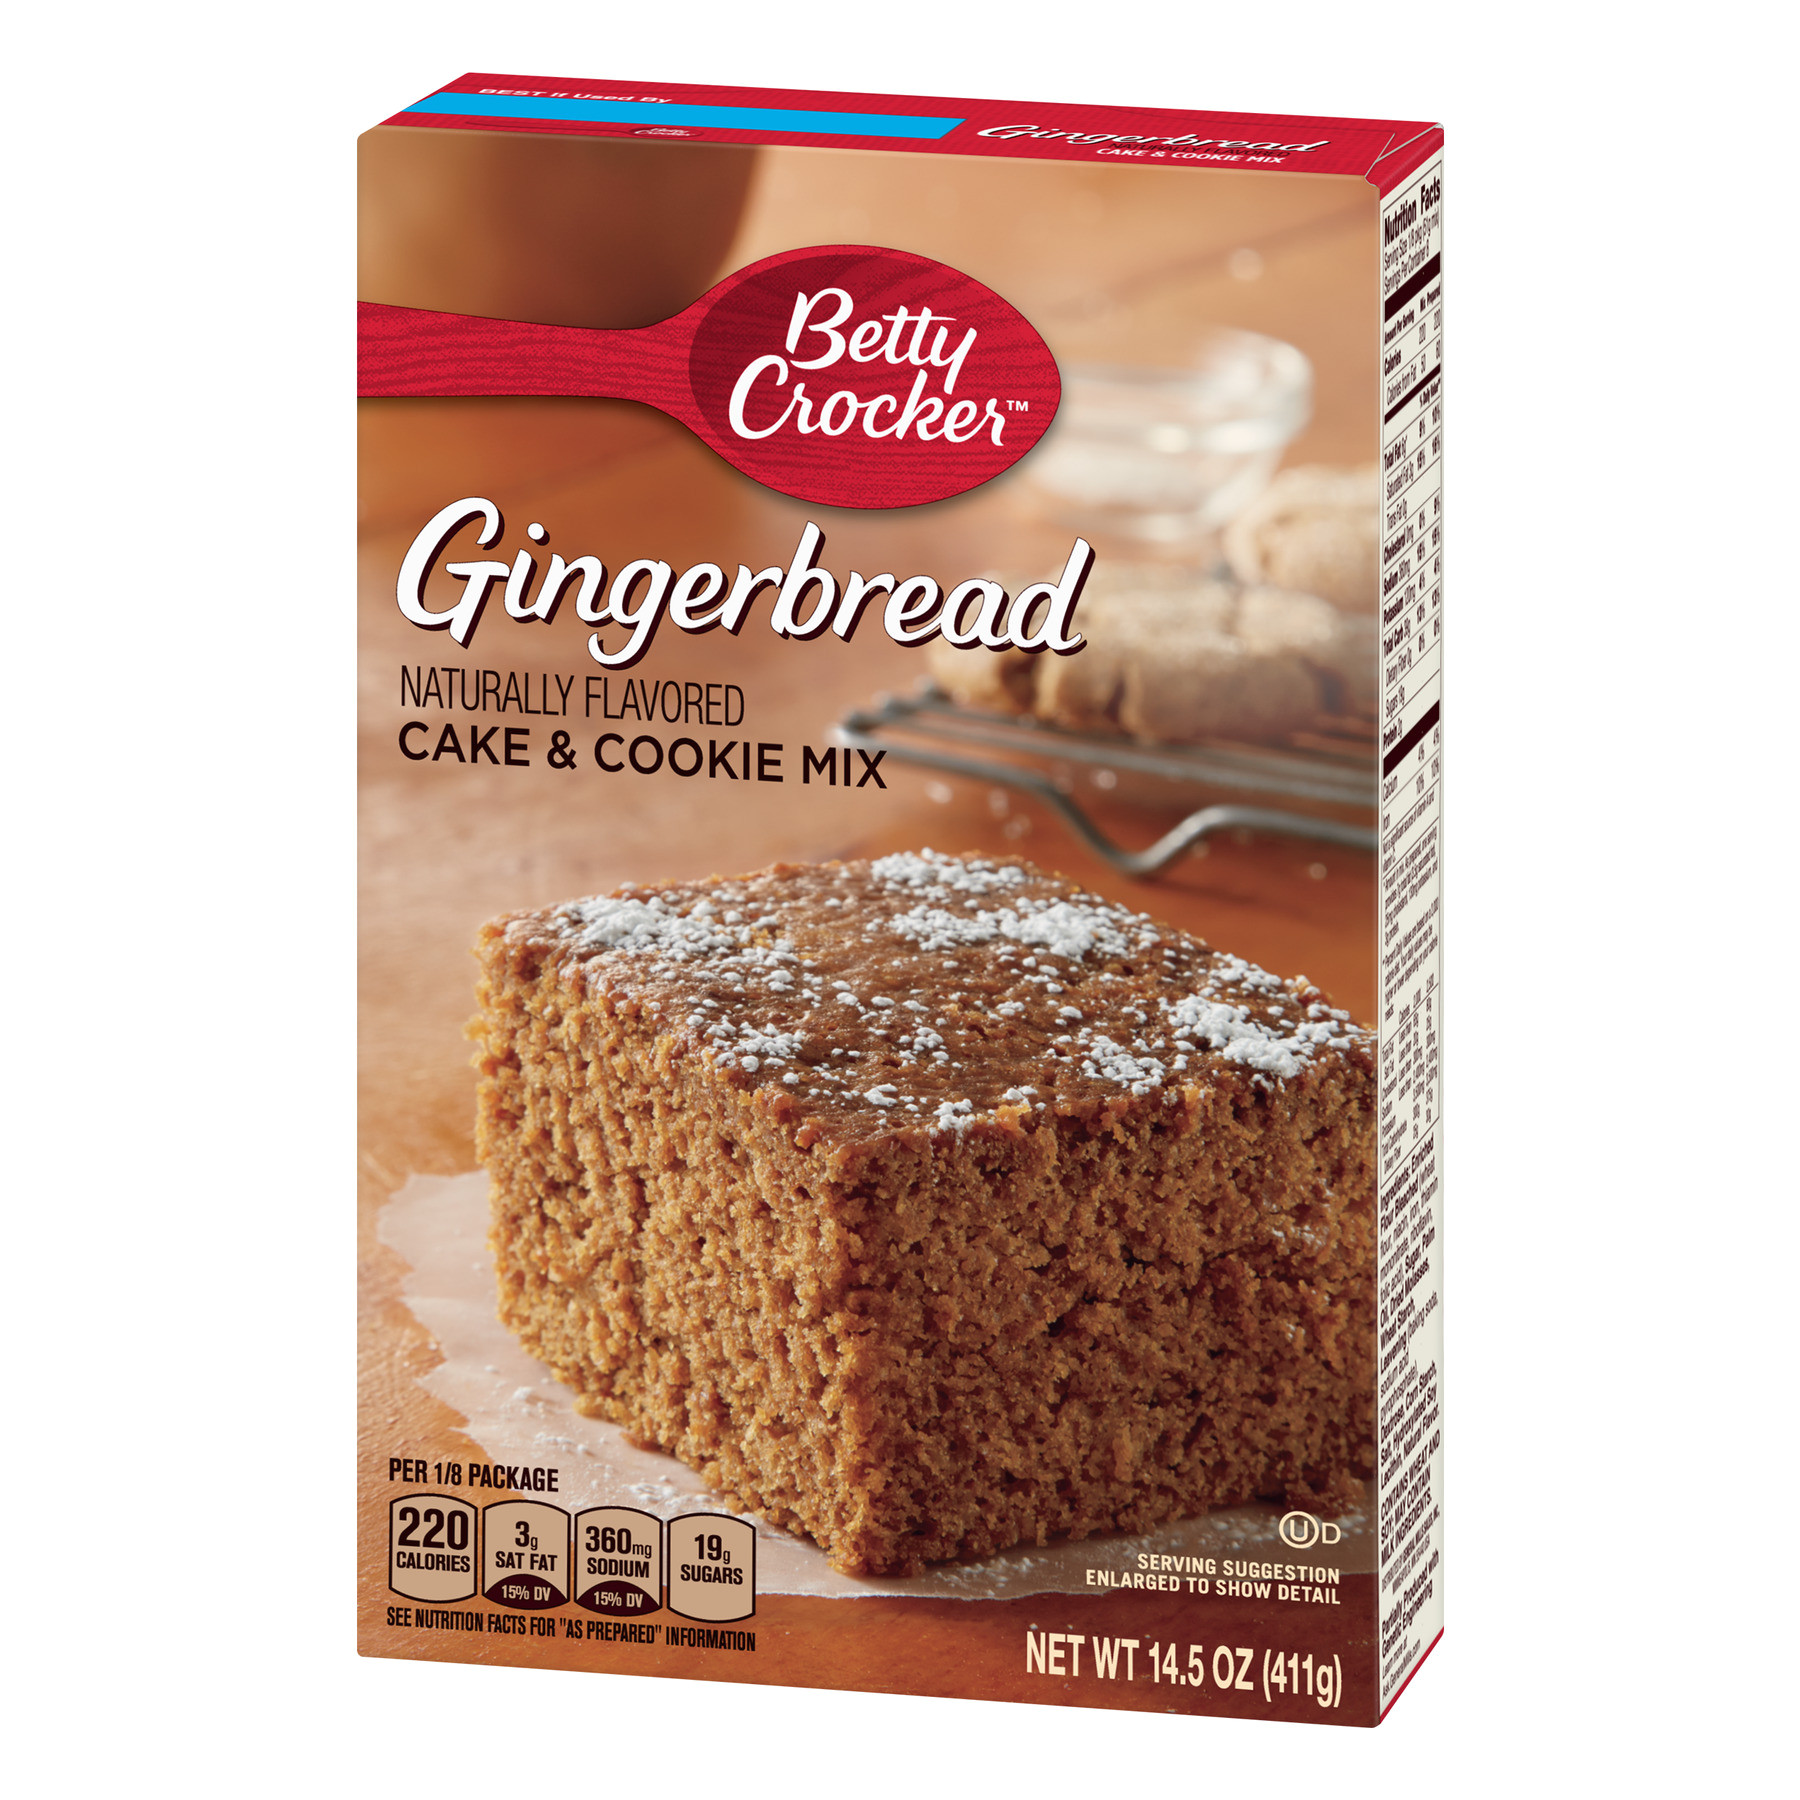 Honolulu Cookie Company Free Shipping Code Betty Crocker Gingerbread Cake and Cookie Mix 14 5 Oz Walmart Com